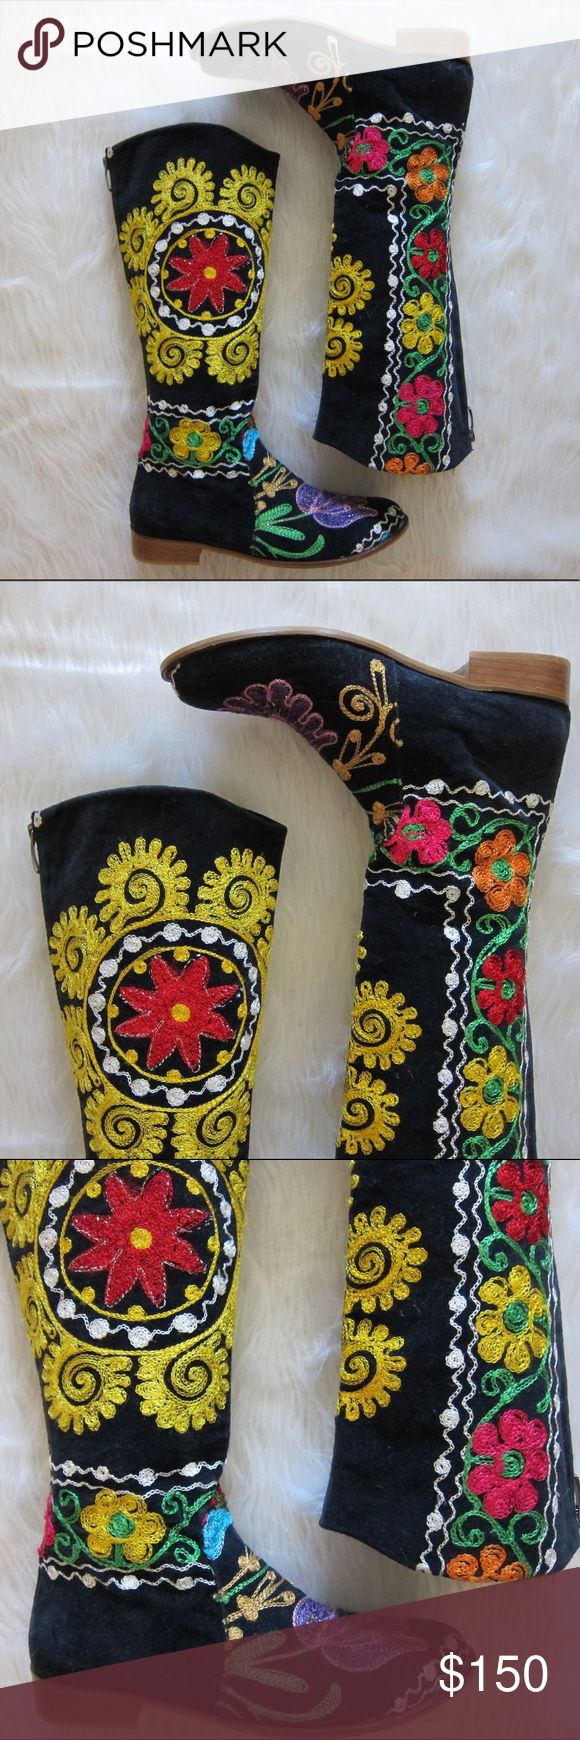 "Vintage Embroidered Penny Lane Velvet 70s Boots Vintage velvet embroidered knee hight boots. 70s Penny Lane style.   Measurements: Size: 38 Boot Height: 15"" Heel Height: 1"" Calf Opening: 6"" Outer Sole Length: 10.5"" Ball of Foot Width: 3.5""   Condition: Vintage, gently used Vintage Shoes"